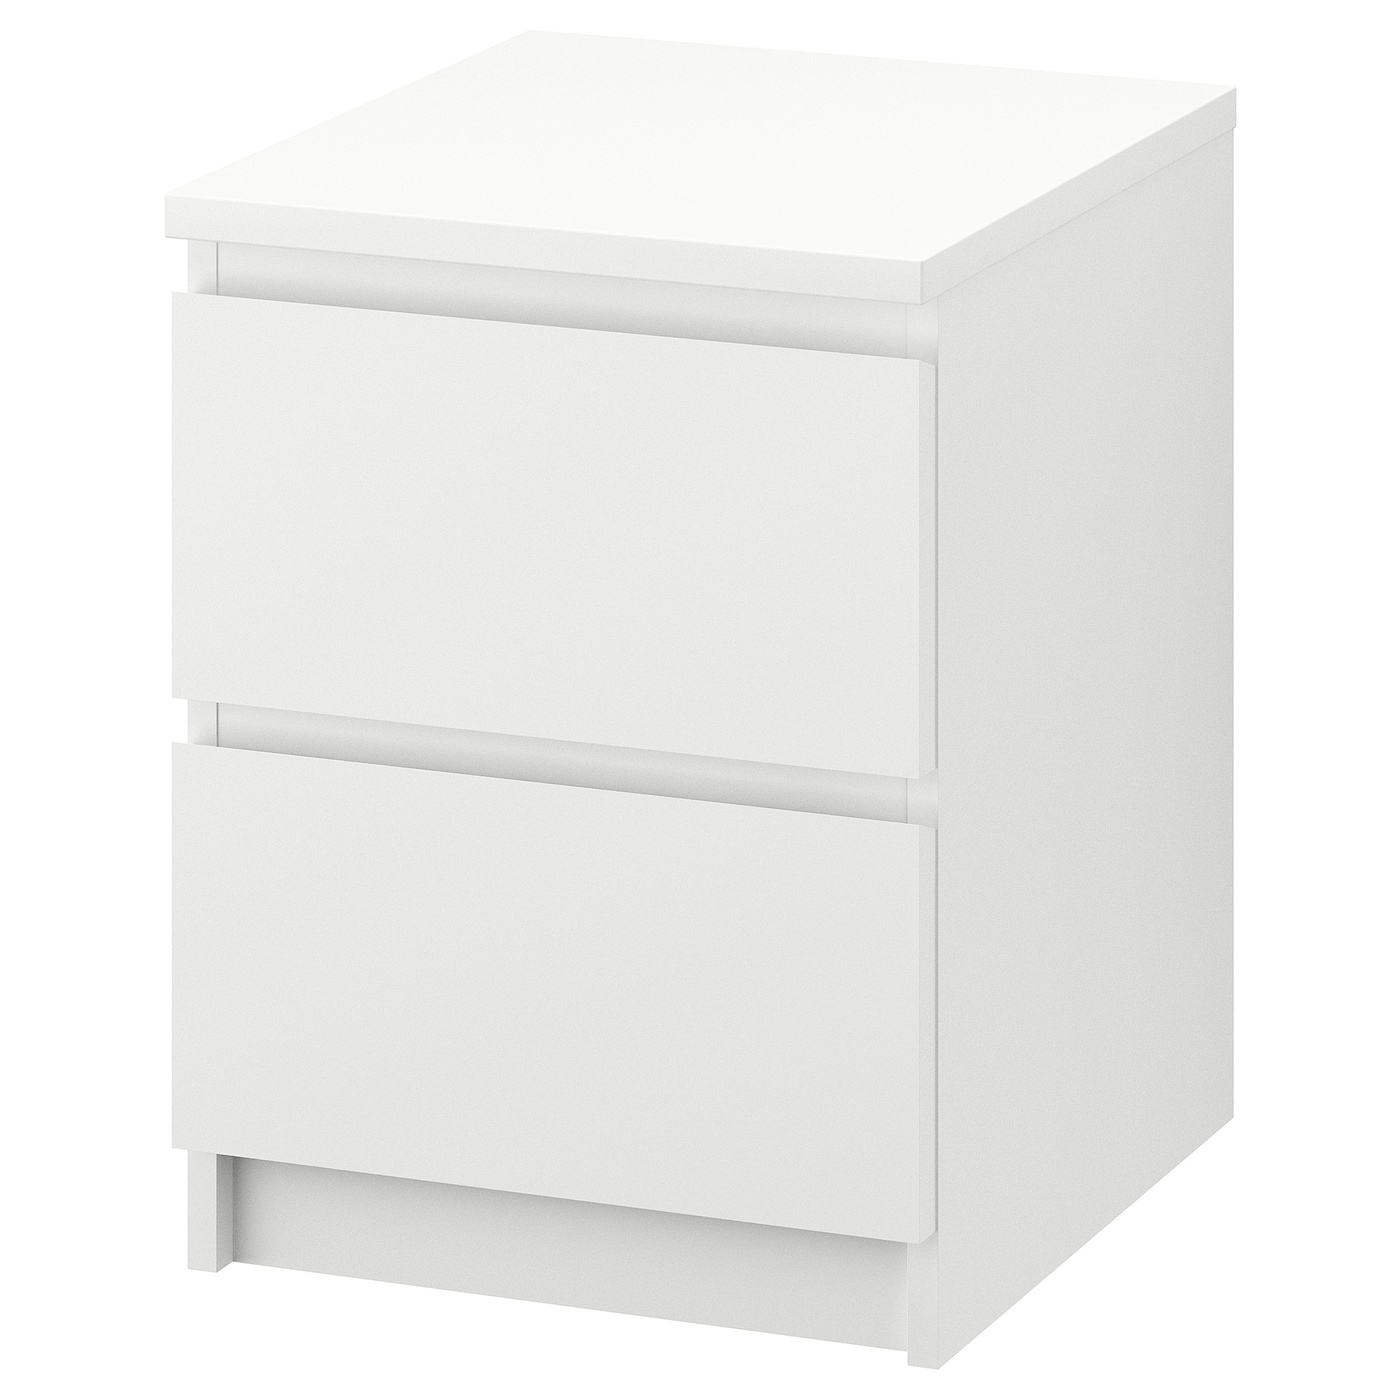 Dressers Chest of Drawers 3 Drawer Bedroom Storage Home Furniture